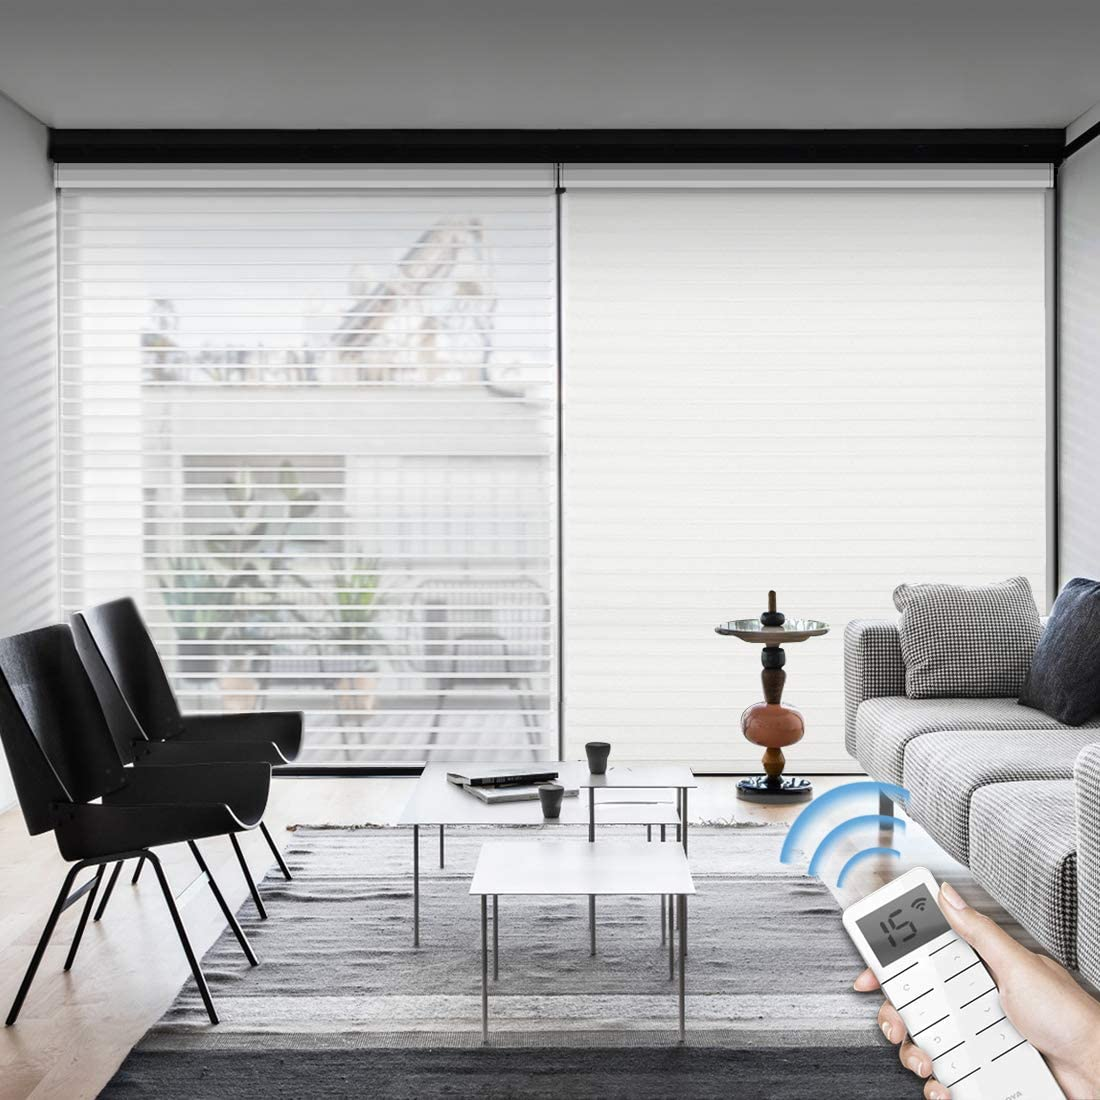 Graywind Motorized Light Filtering Cordless Shangrila Roller Blinds Remote Control Rechargeable Wireless Privacy Sheer Blind with Valance for Smart Home and Office, Customized Size (White)